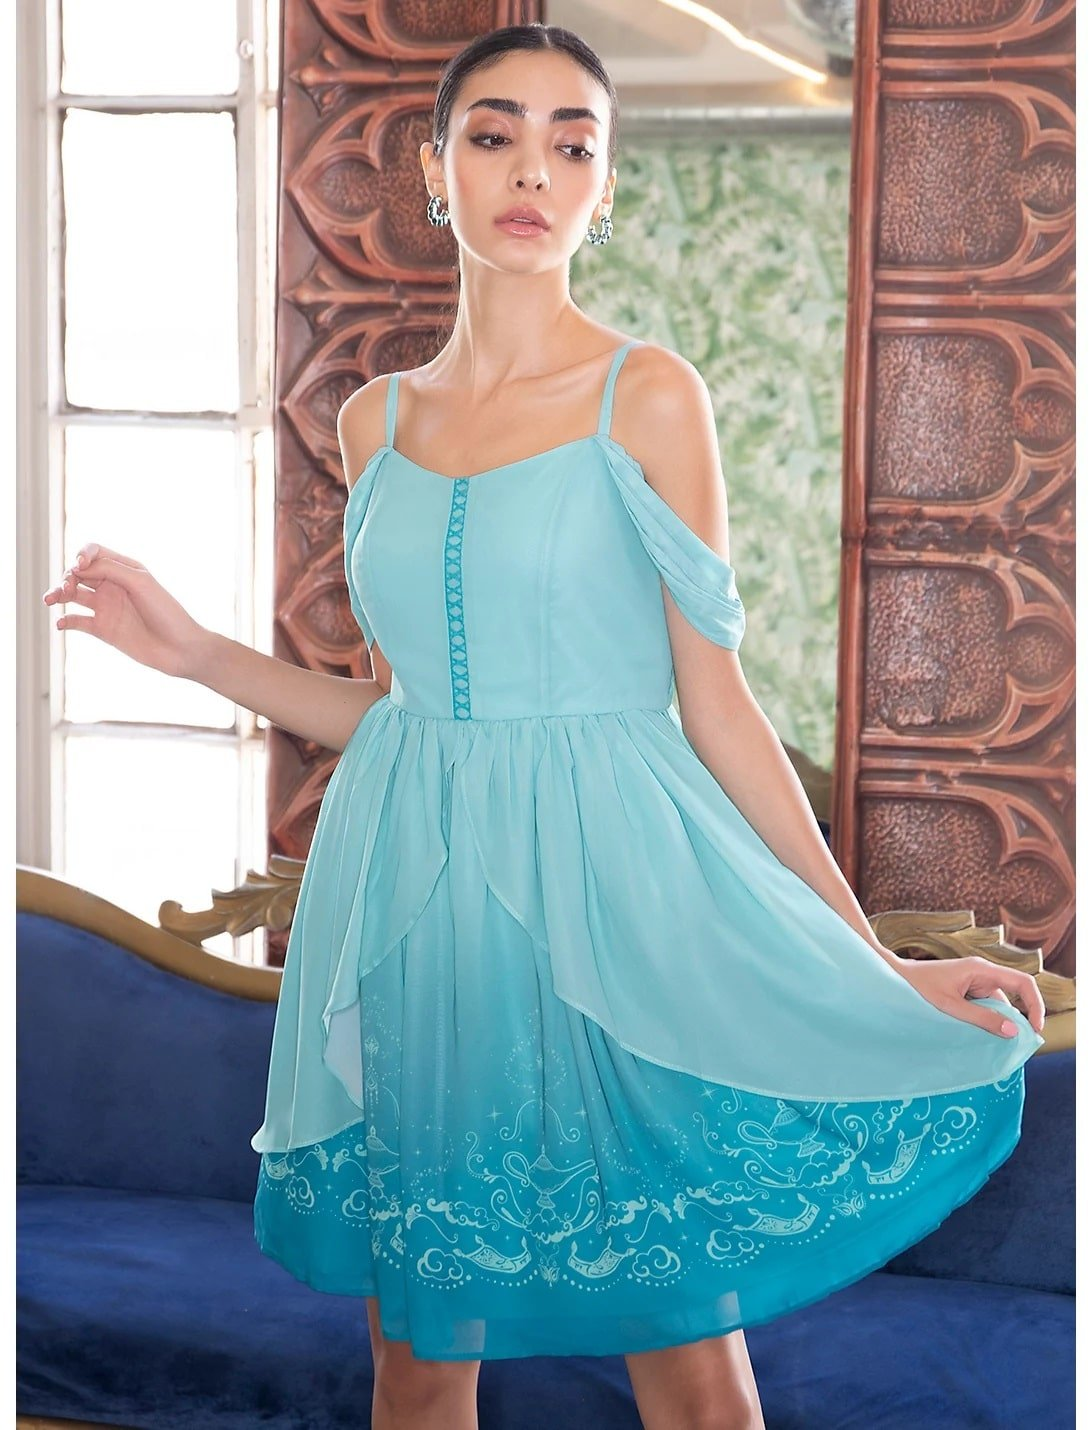 Her Universe Disney Princess dress collection is now available at Hot Topic 21